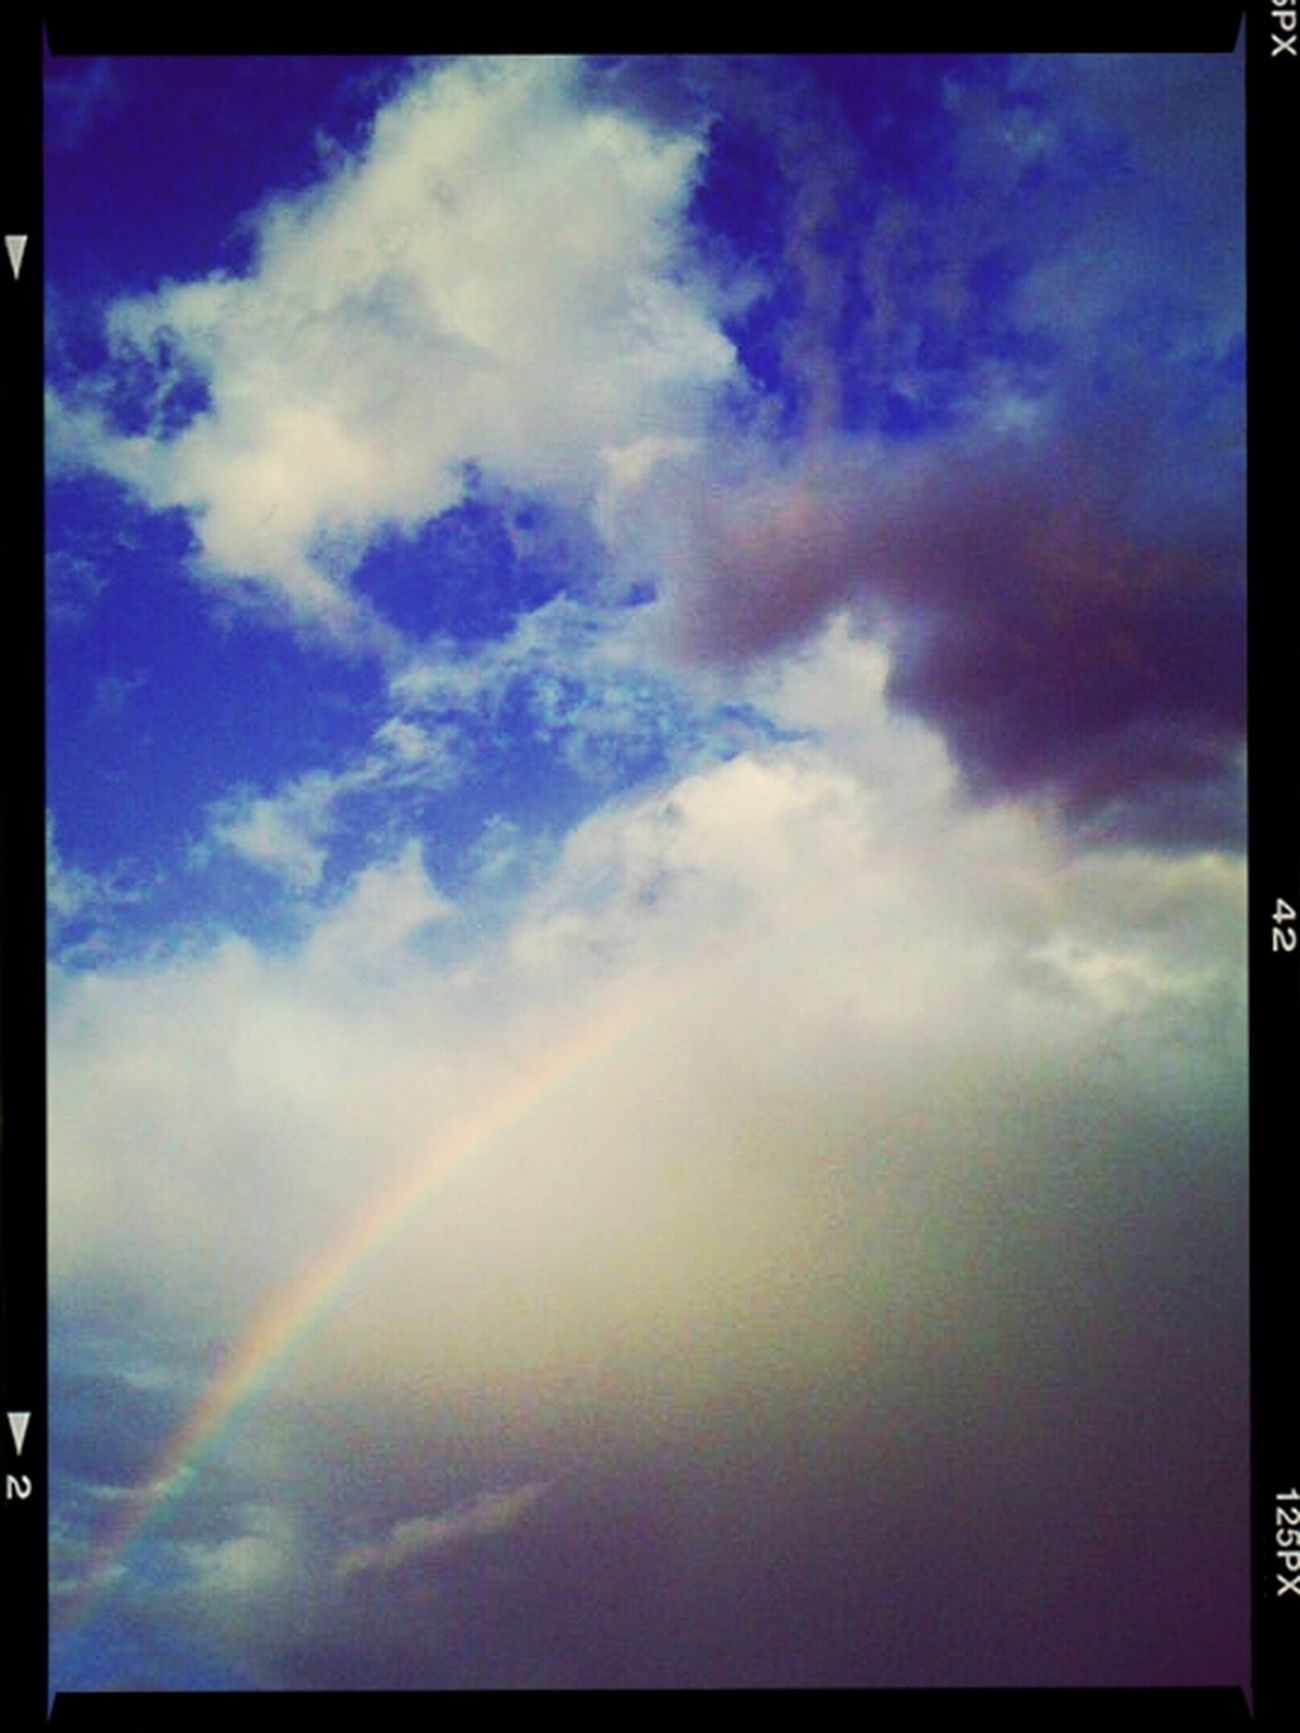 #sunshine #clouds #sky #skyporn #rainbow #beautiful